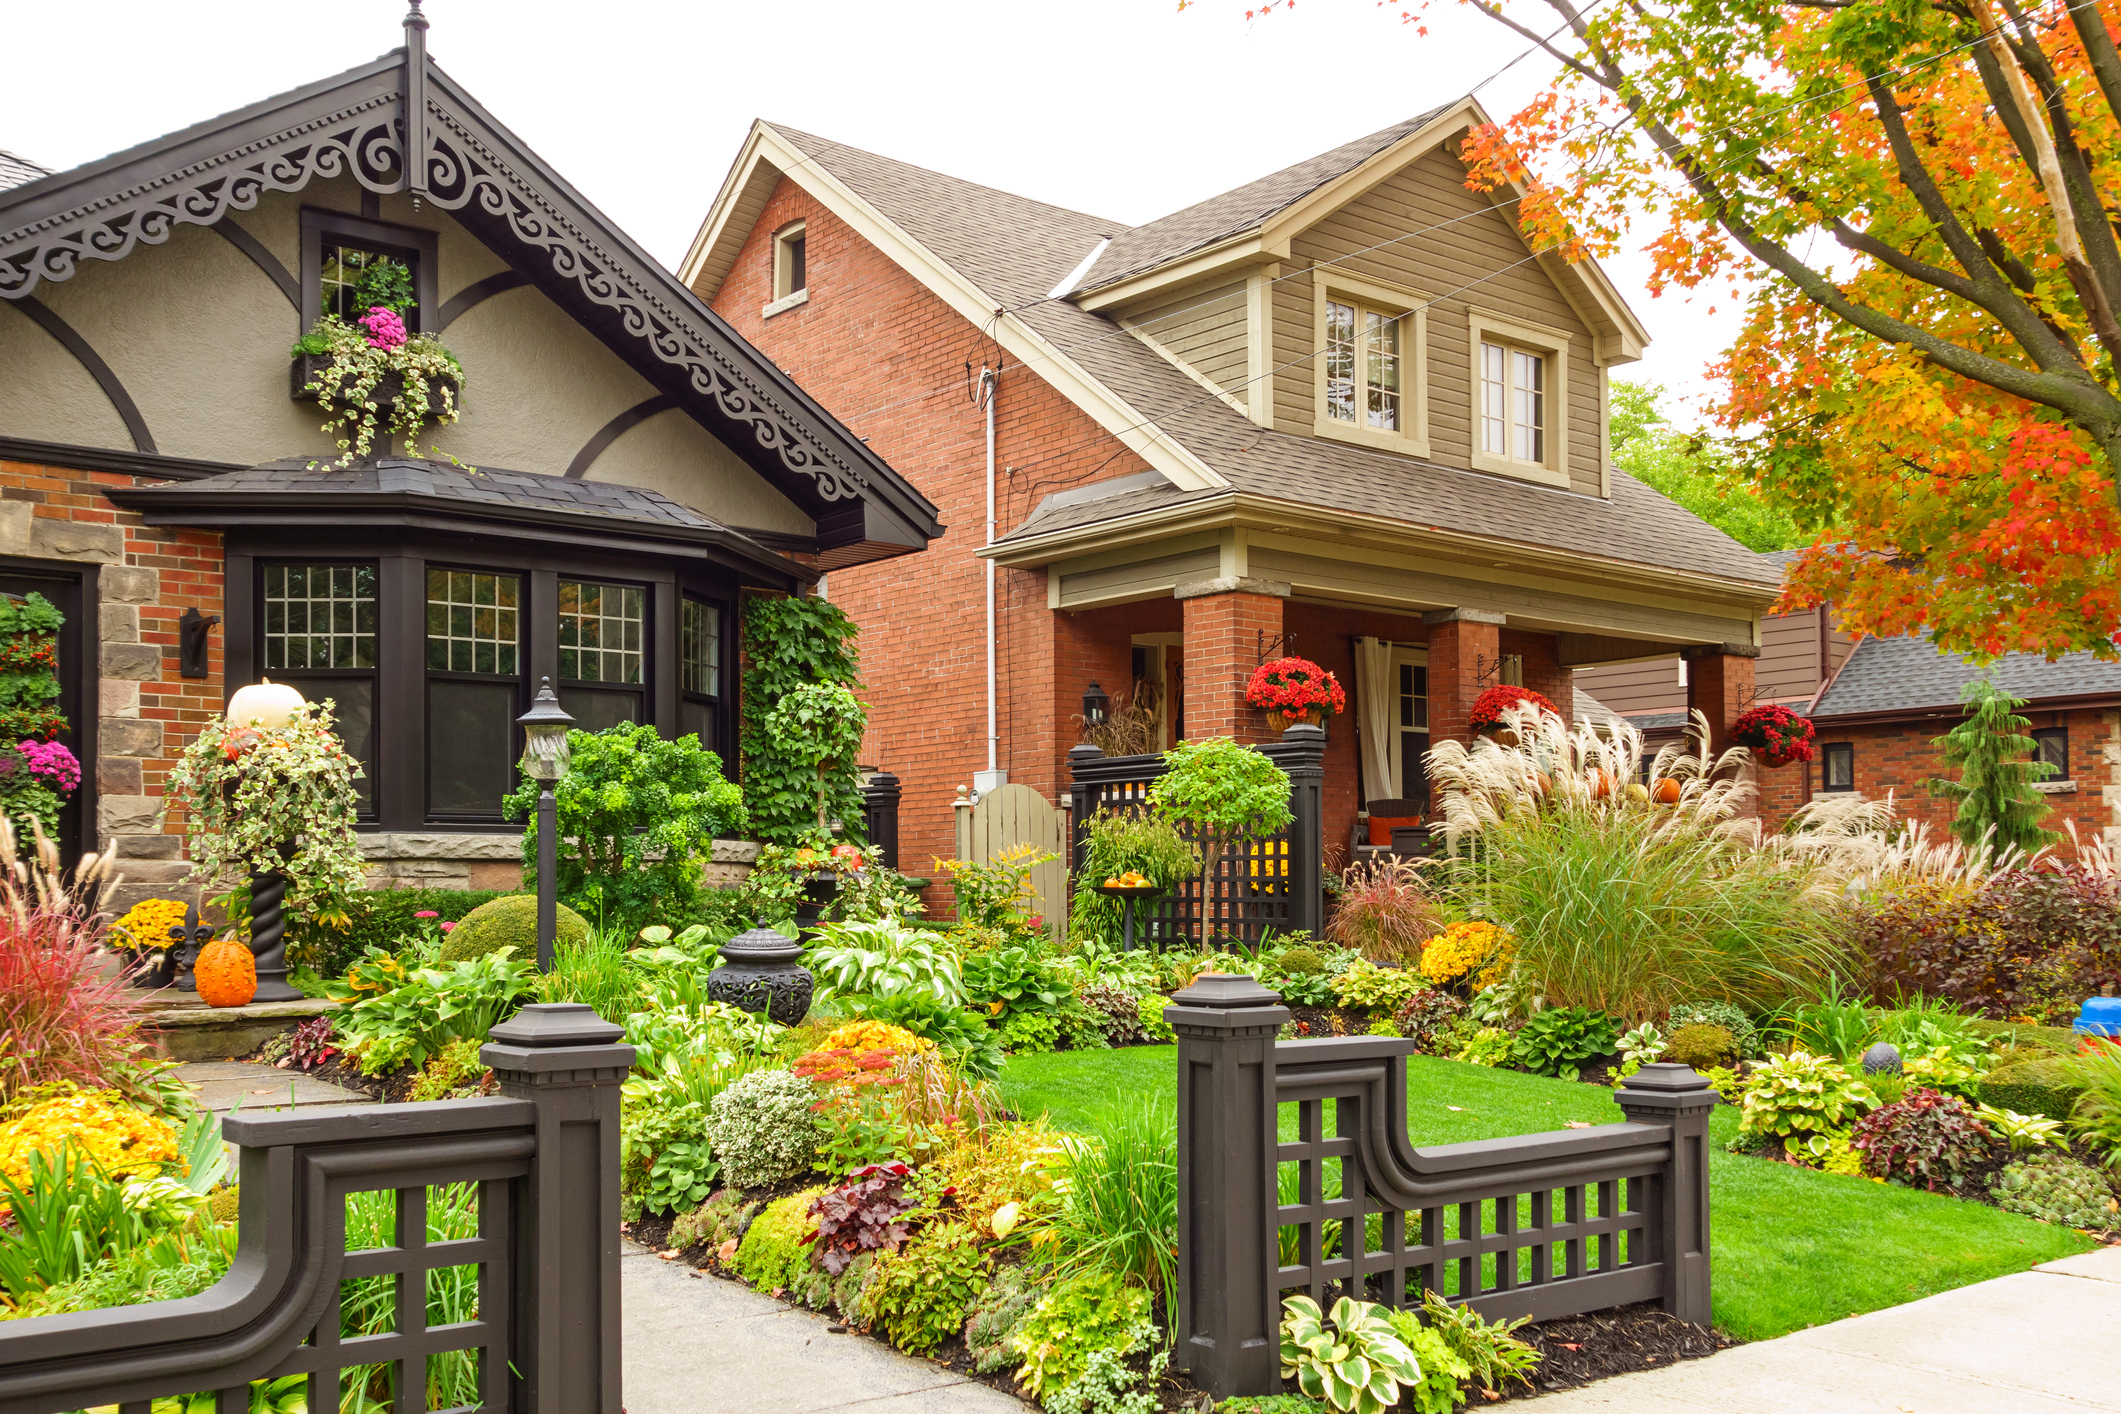 Home in Hamilton the Best Option to Invest in Ontario